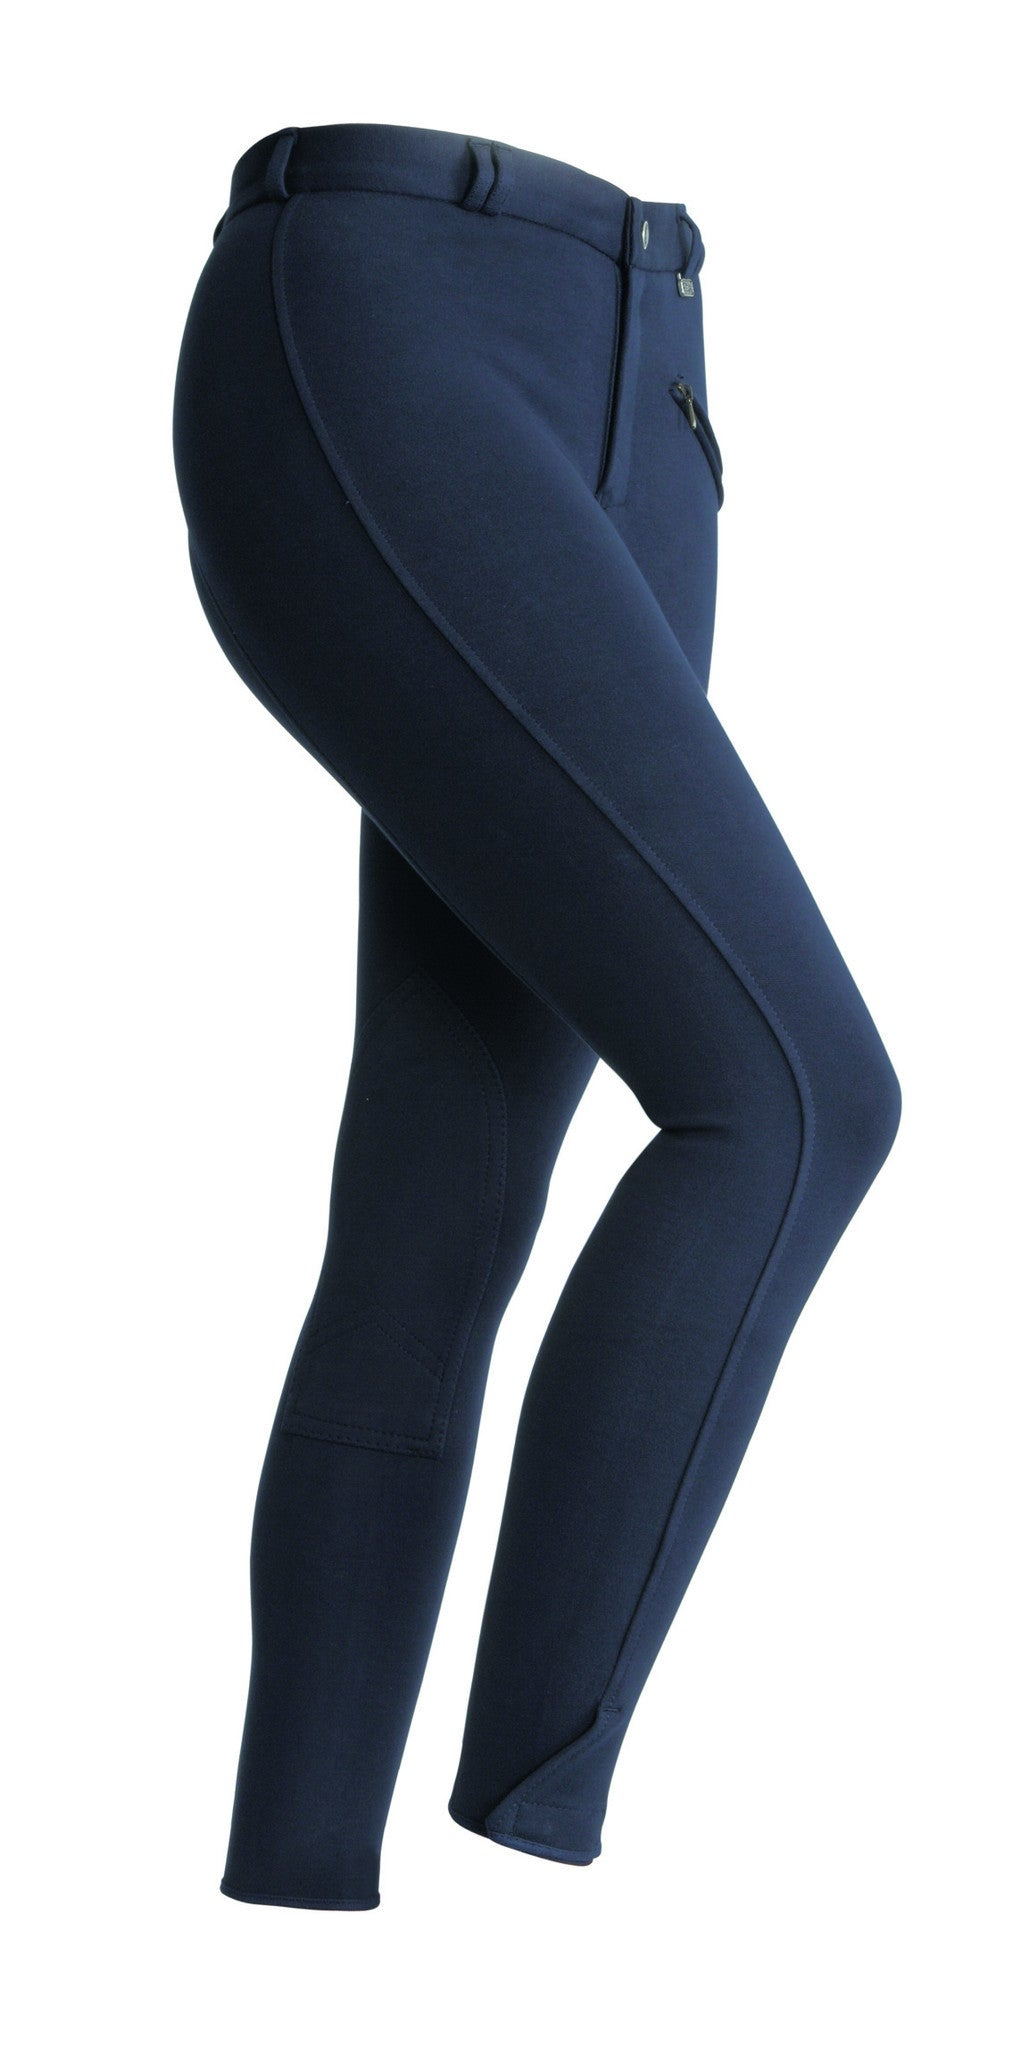 Shires SaddleHugger Breeches - Maids